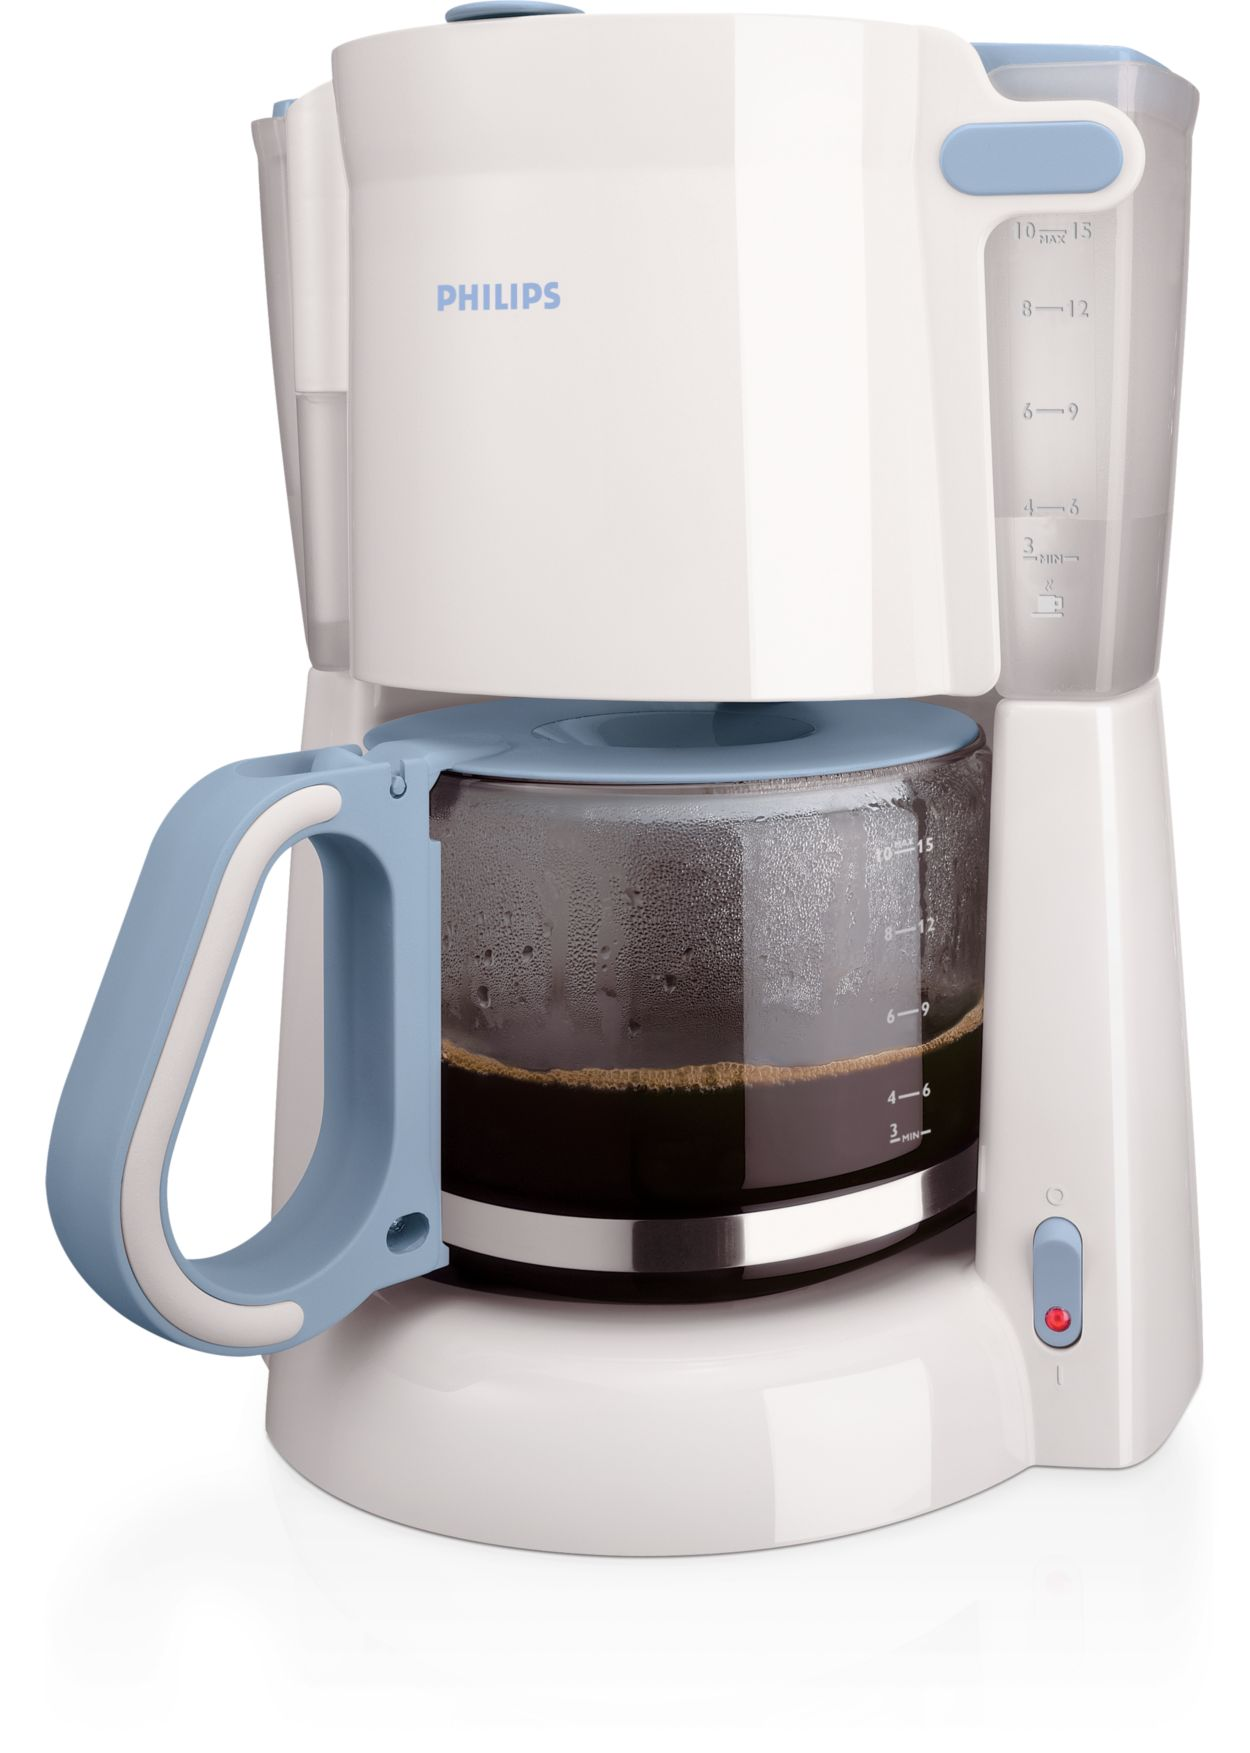 Best Coffee Maker With Paper Filter : Daily Collection Coffee maker HD7448/70 Philips